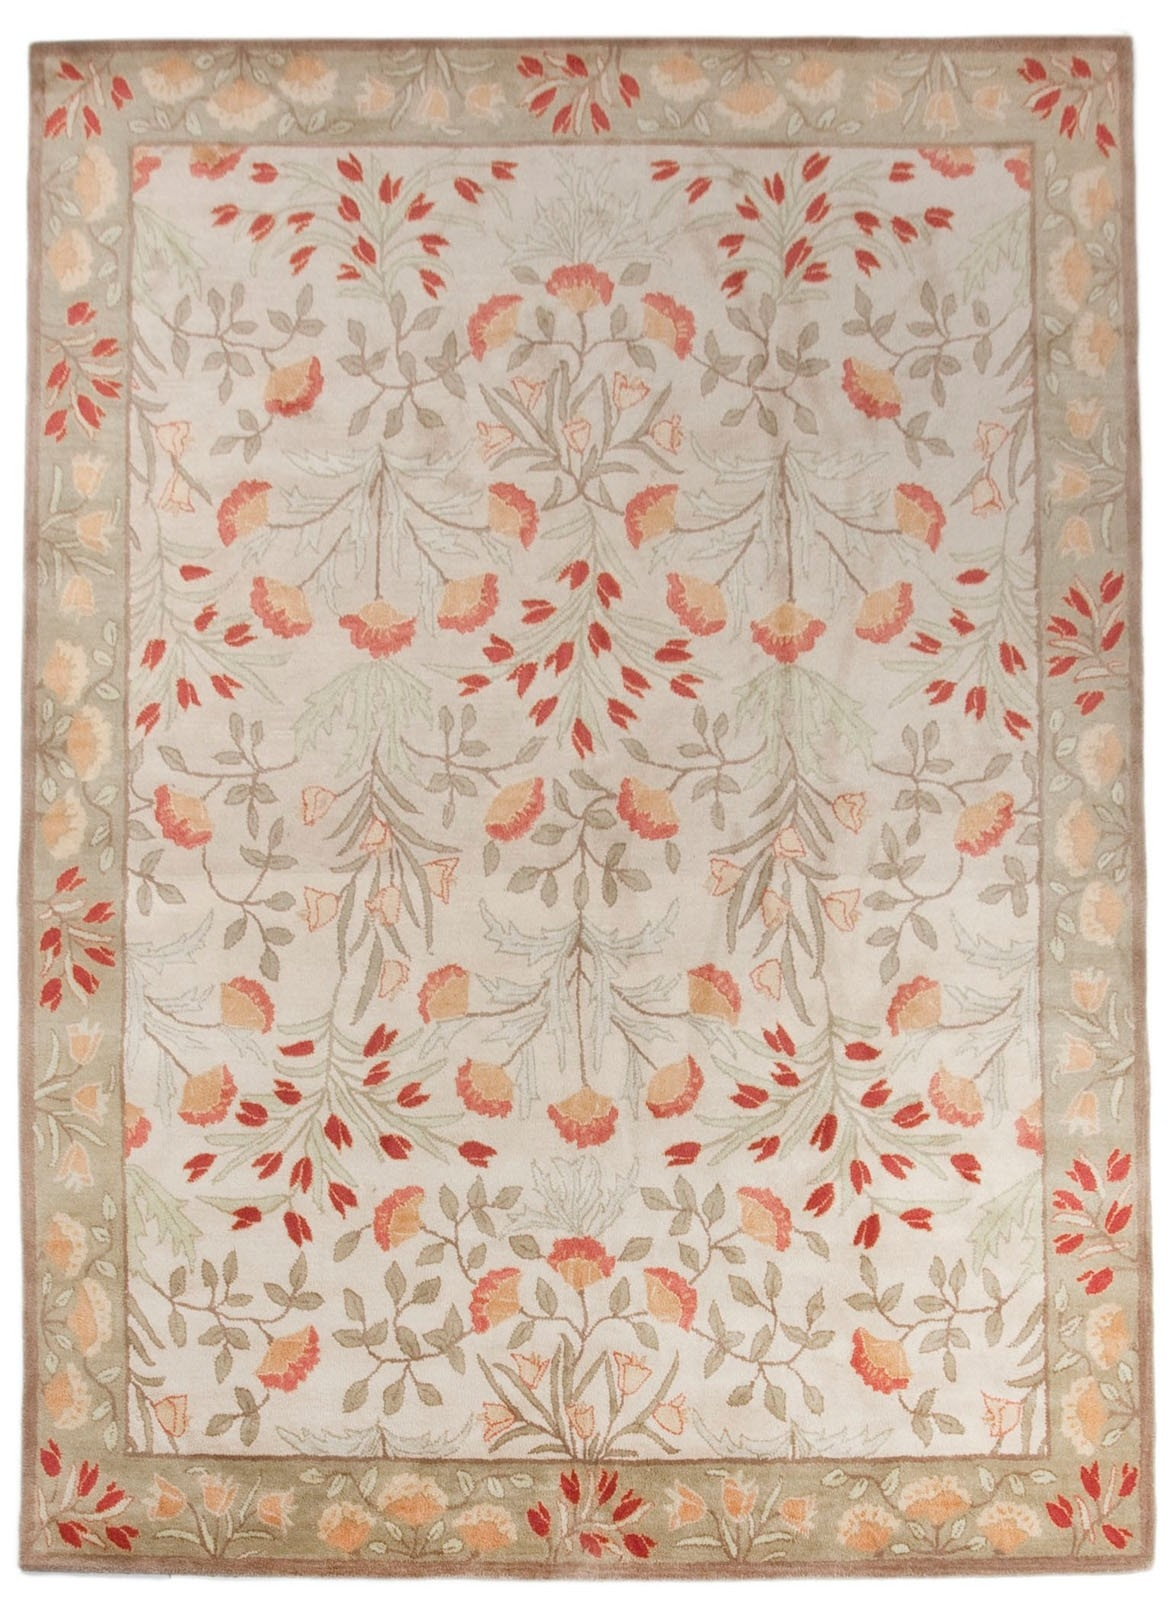 15 Inspirations Of Wool Area Rugs 8 215 10